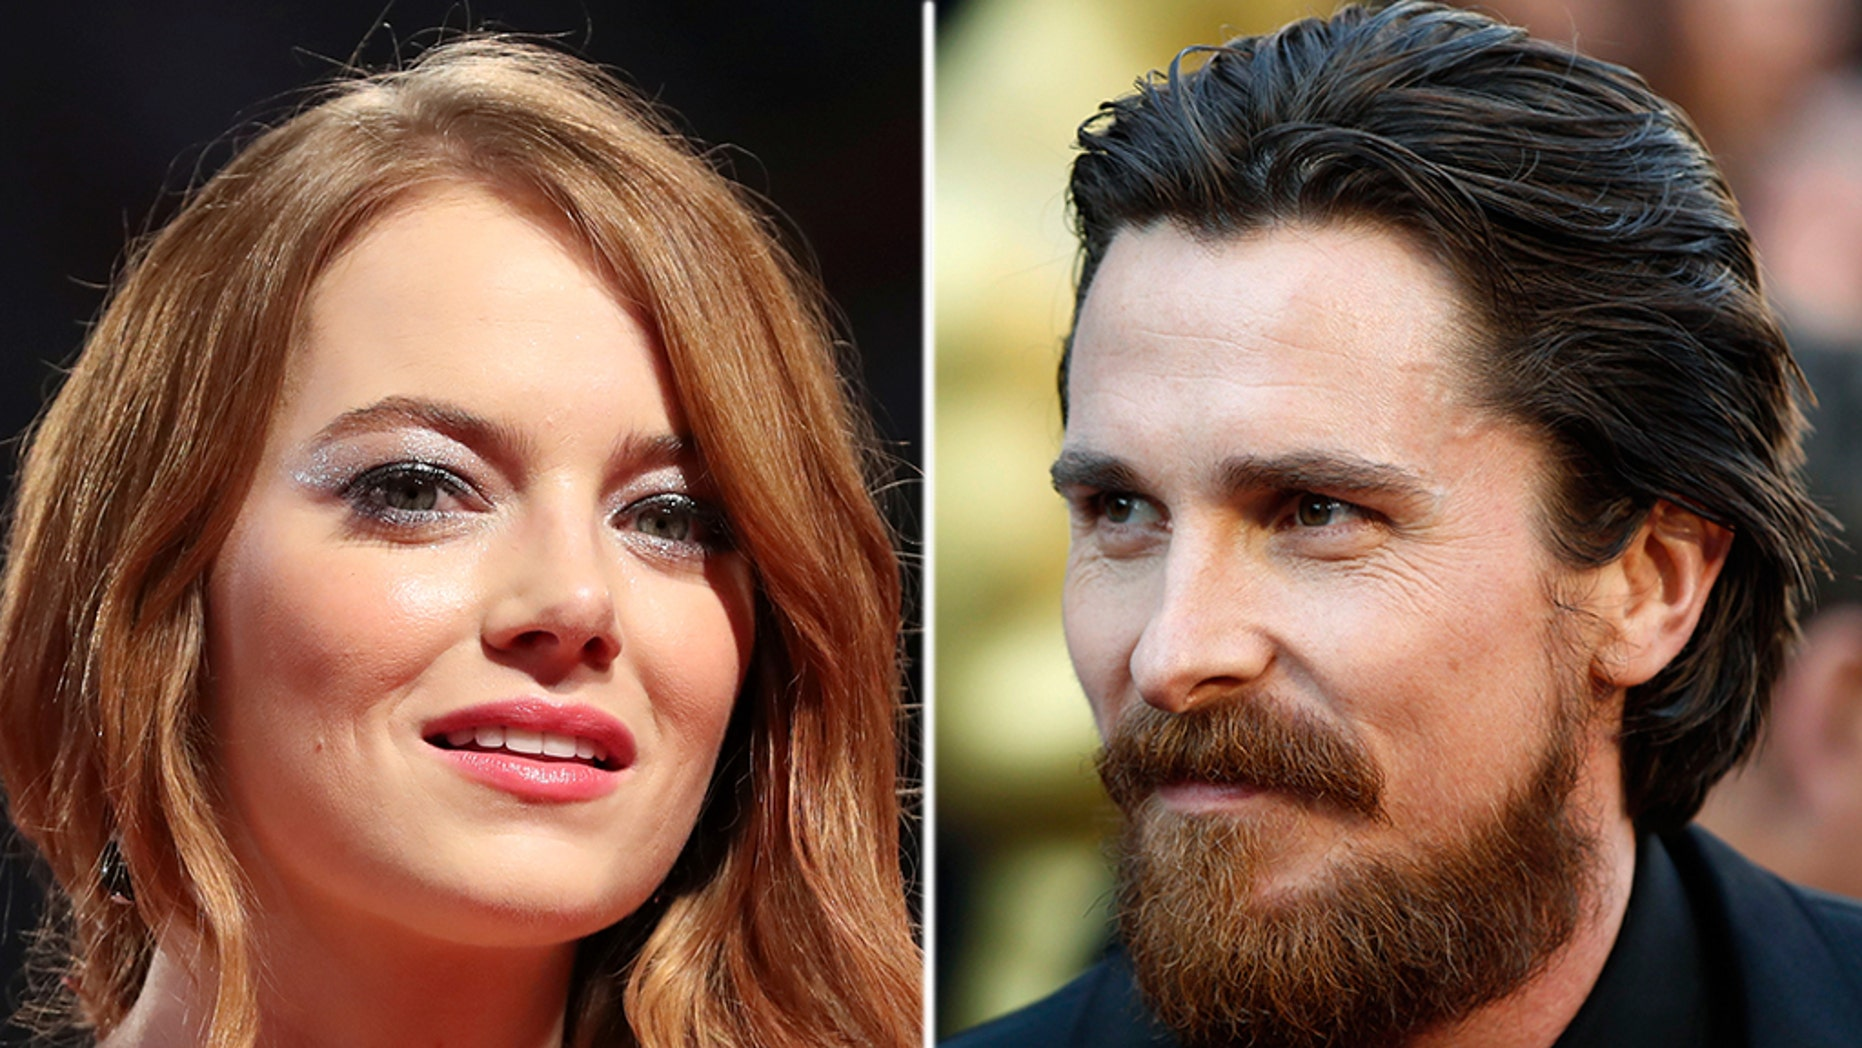 Emma Stone and Christan Bale have both gone the extra mile to ensure they're in character.